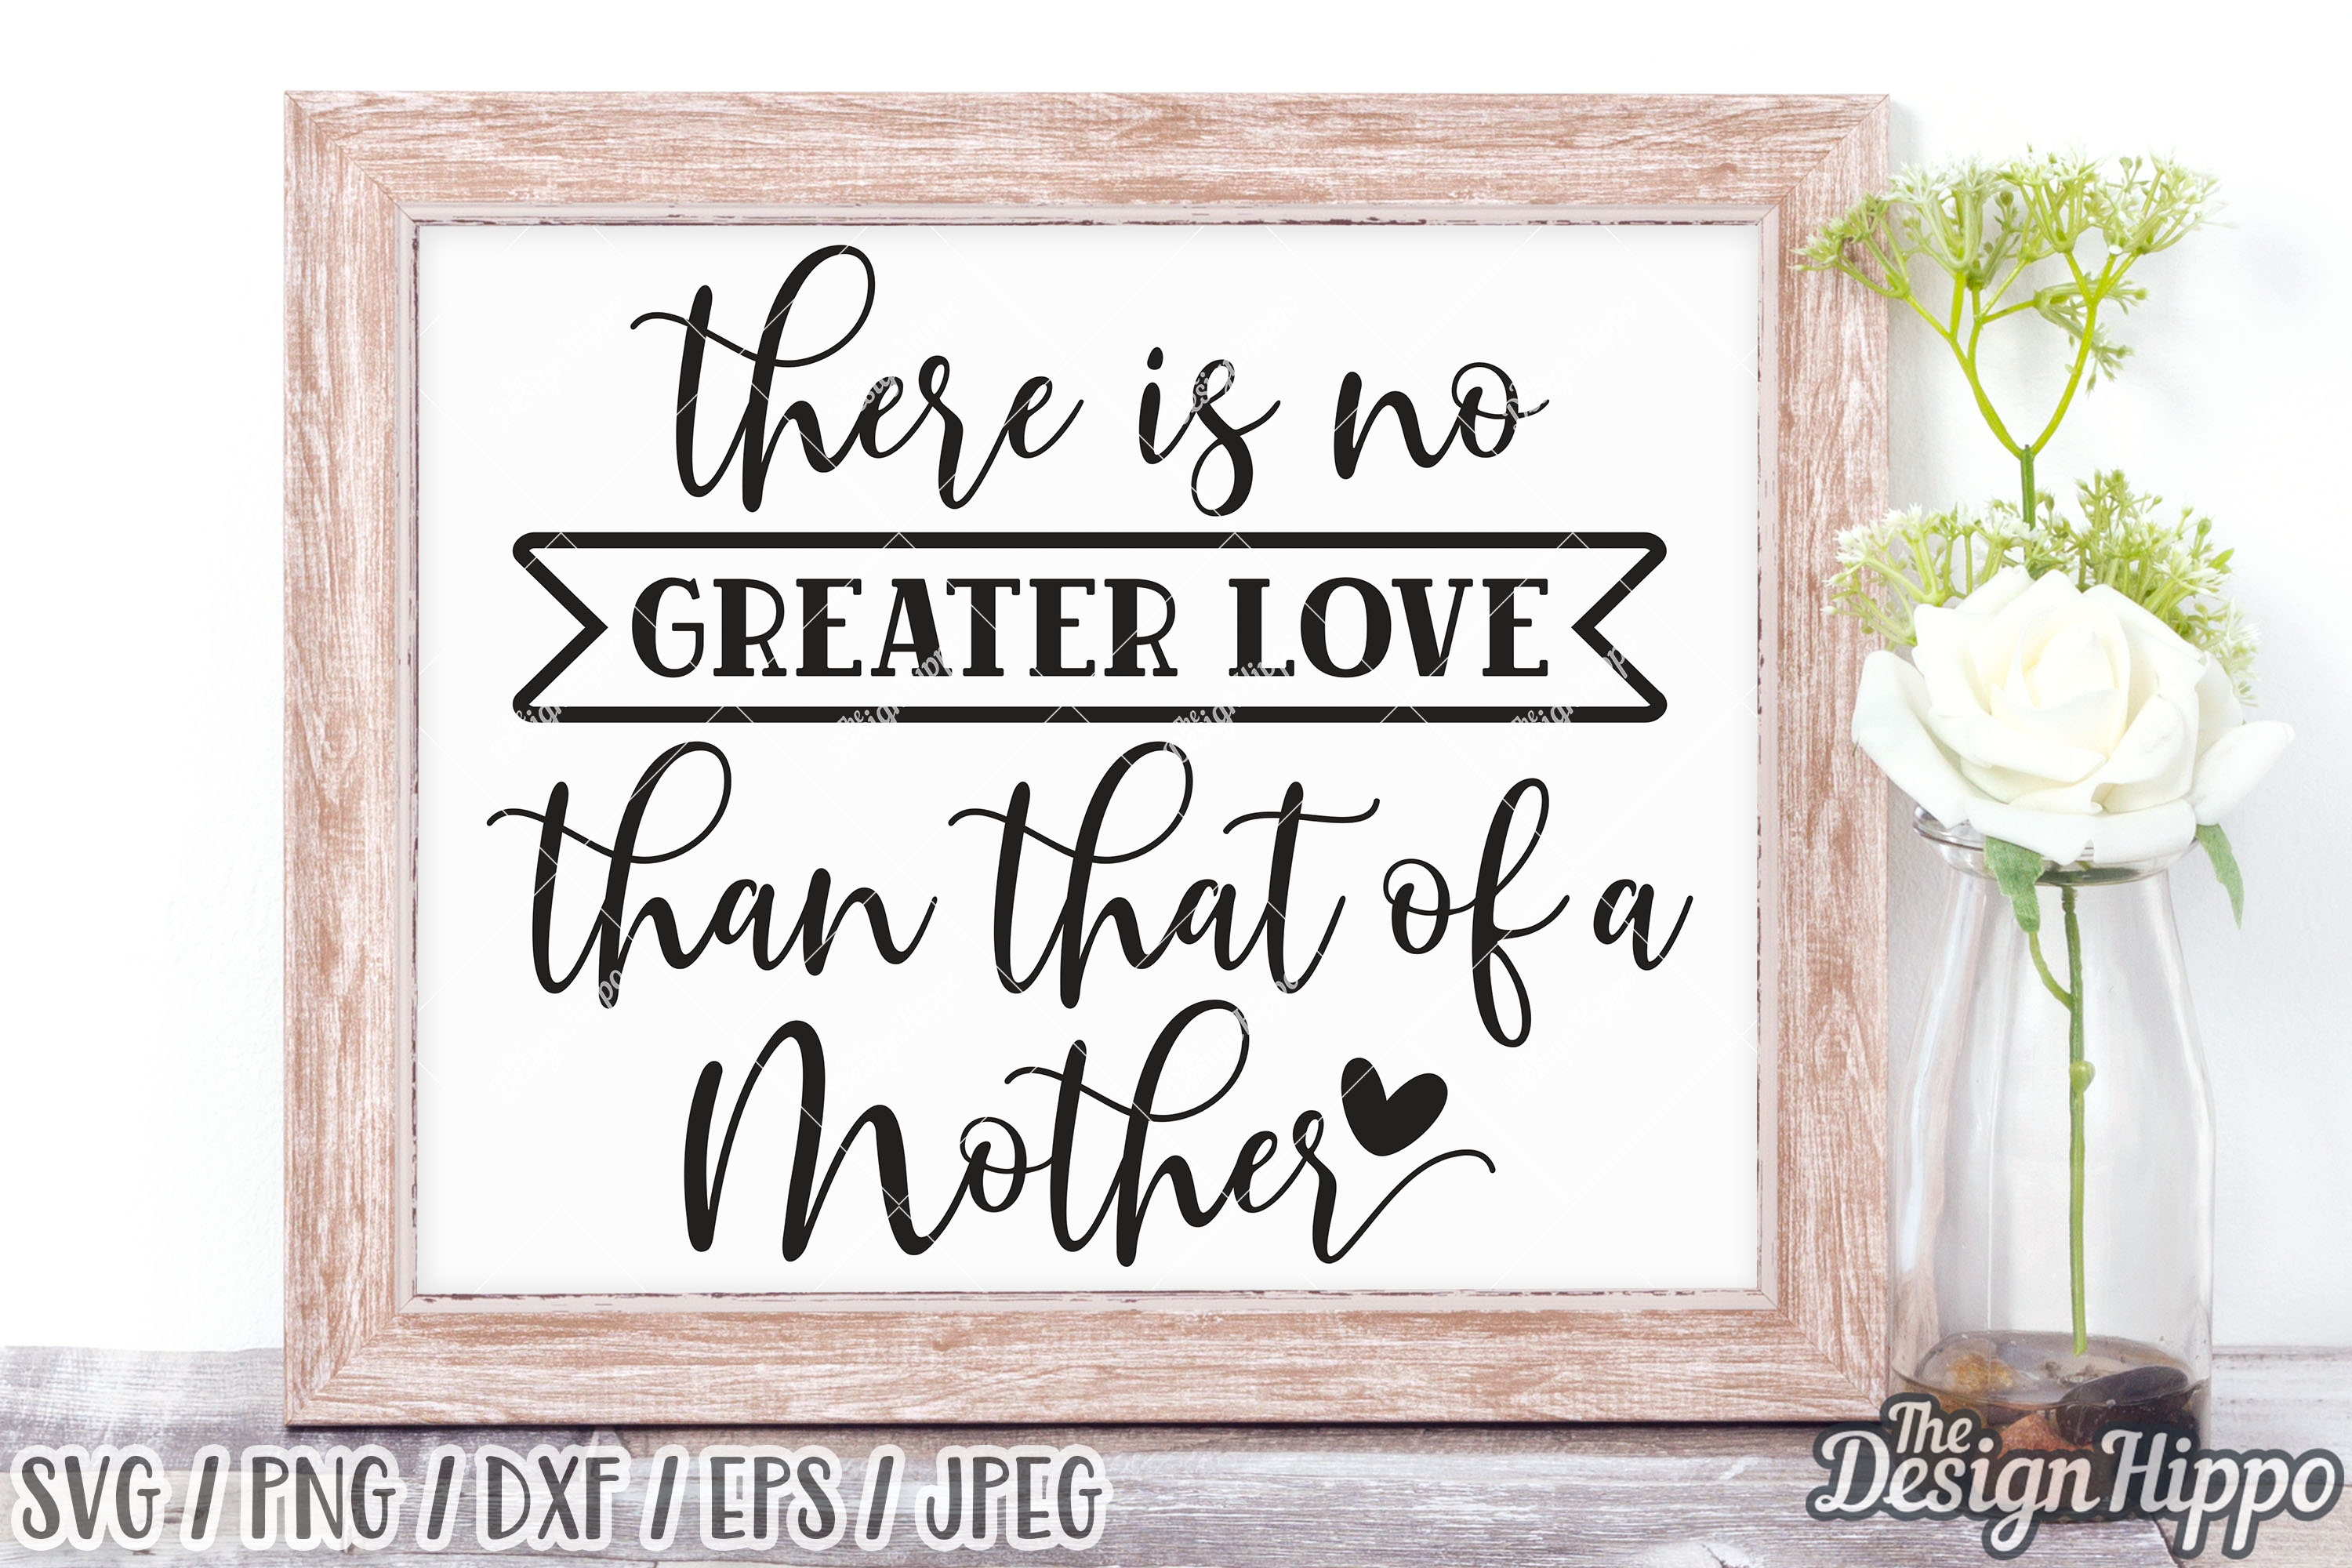 Mom Quotes SVG Bundle, 20 Designs, SVG PNG DXF Cutting Files example image 9